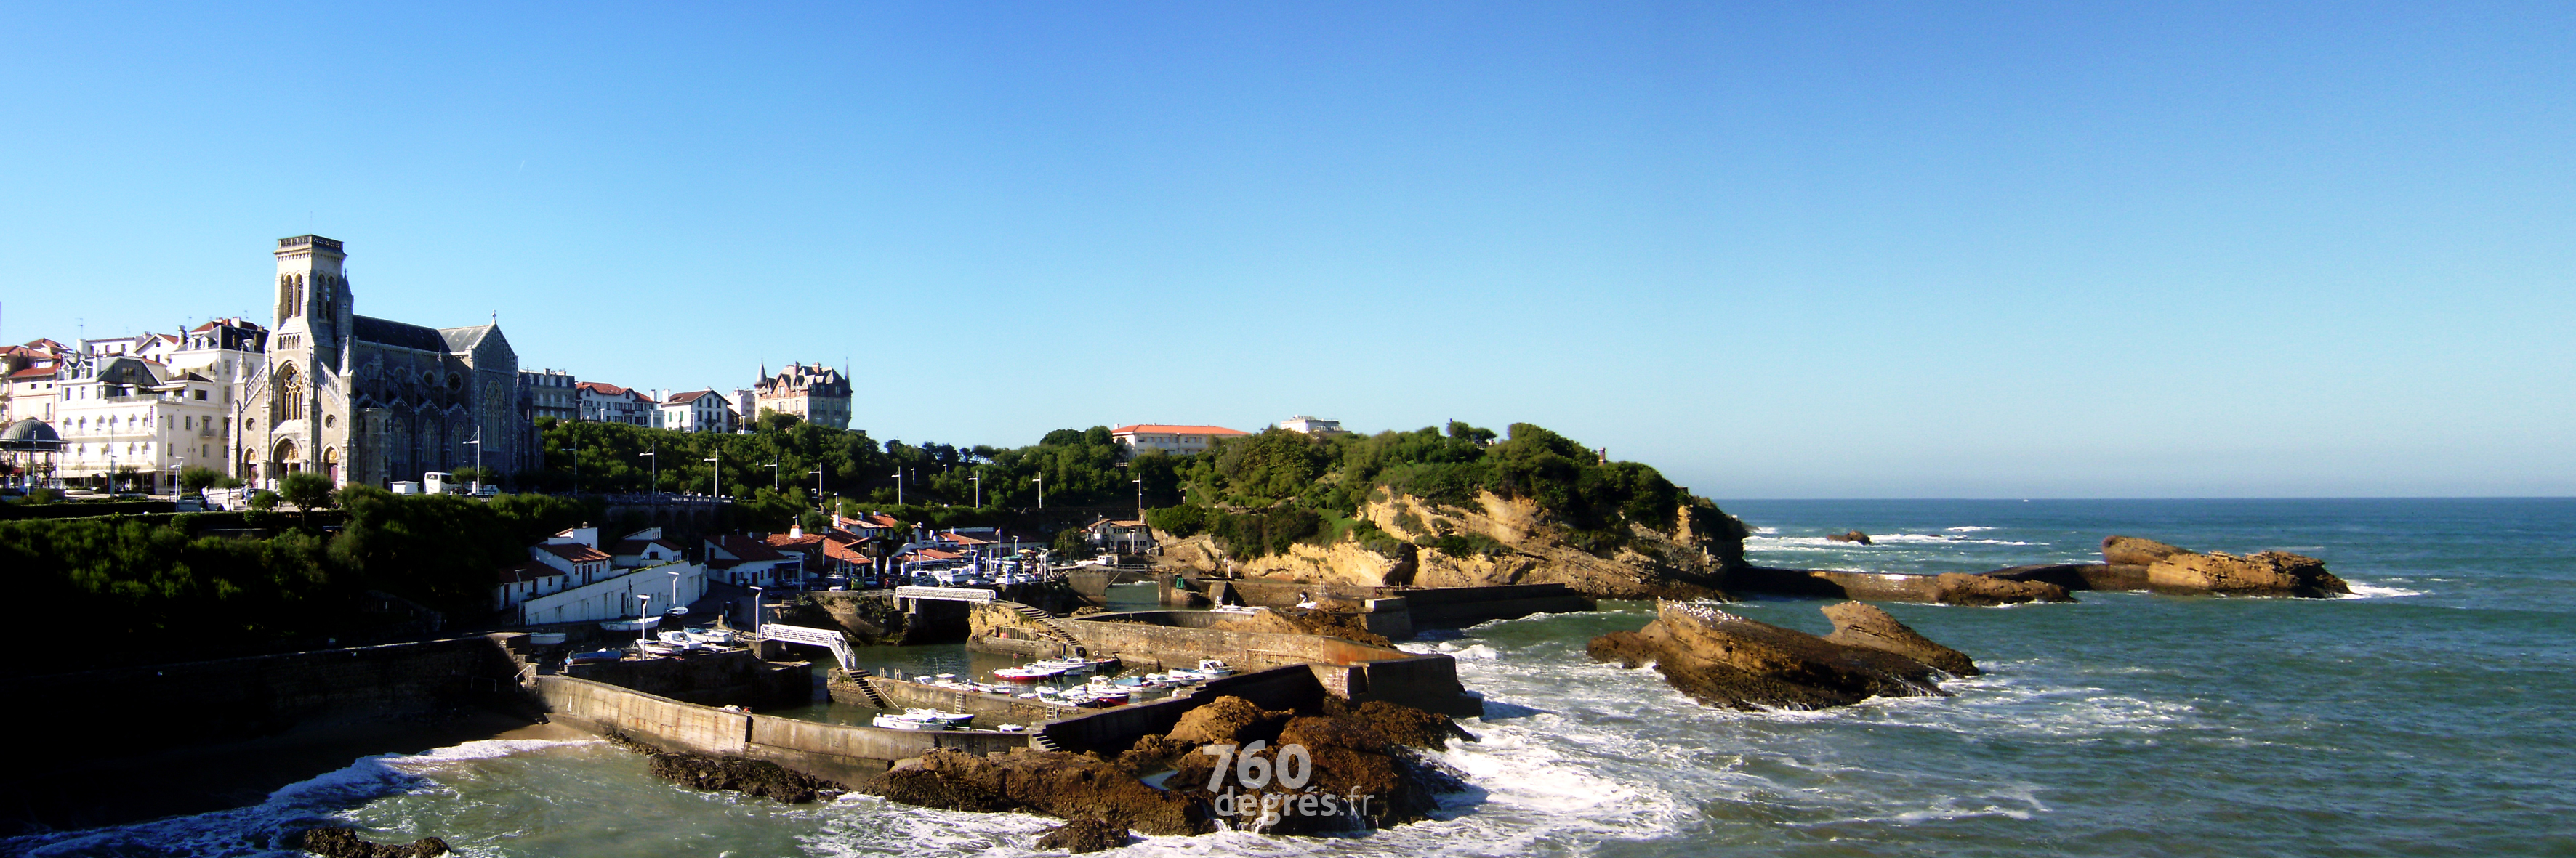 760degres-pays-basque-biarritz-03